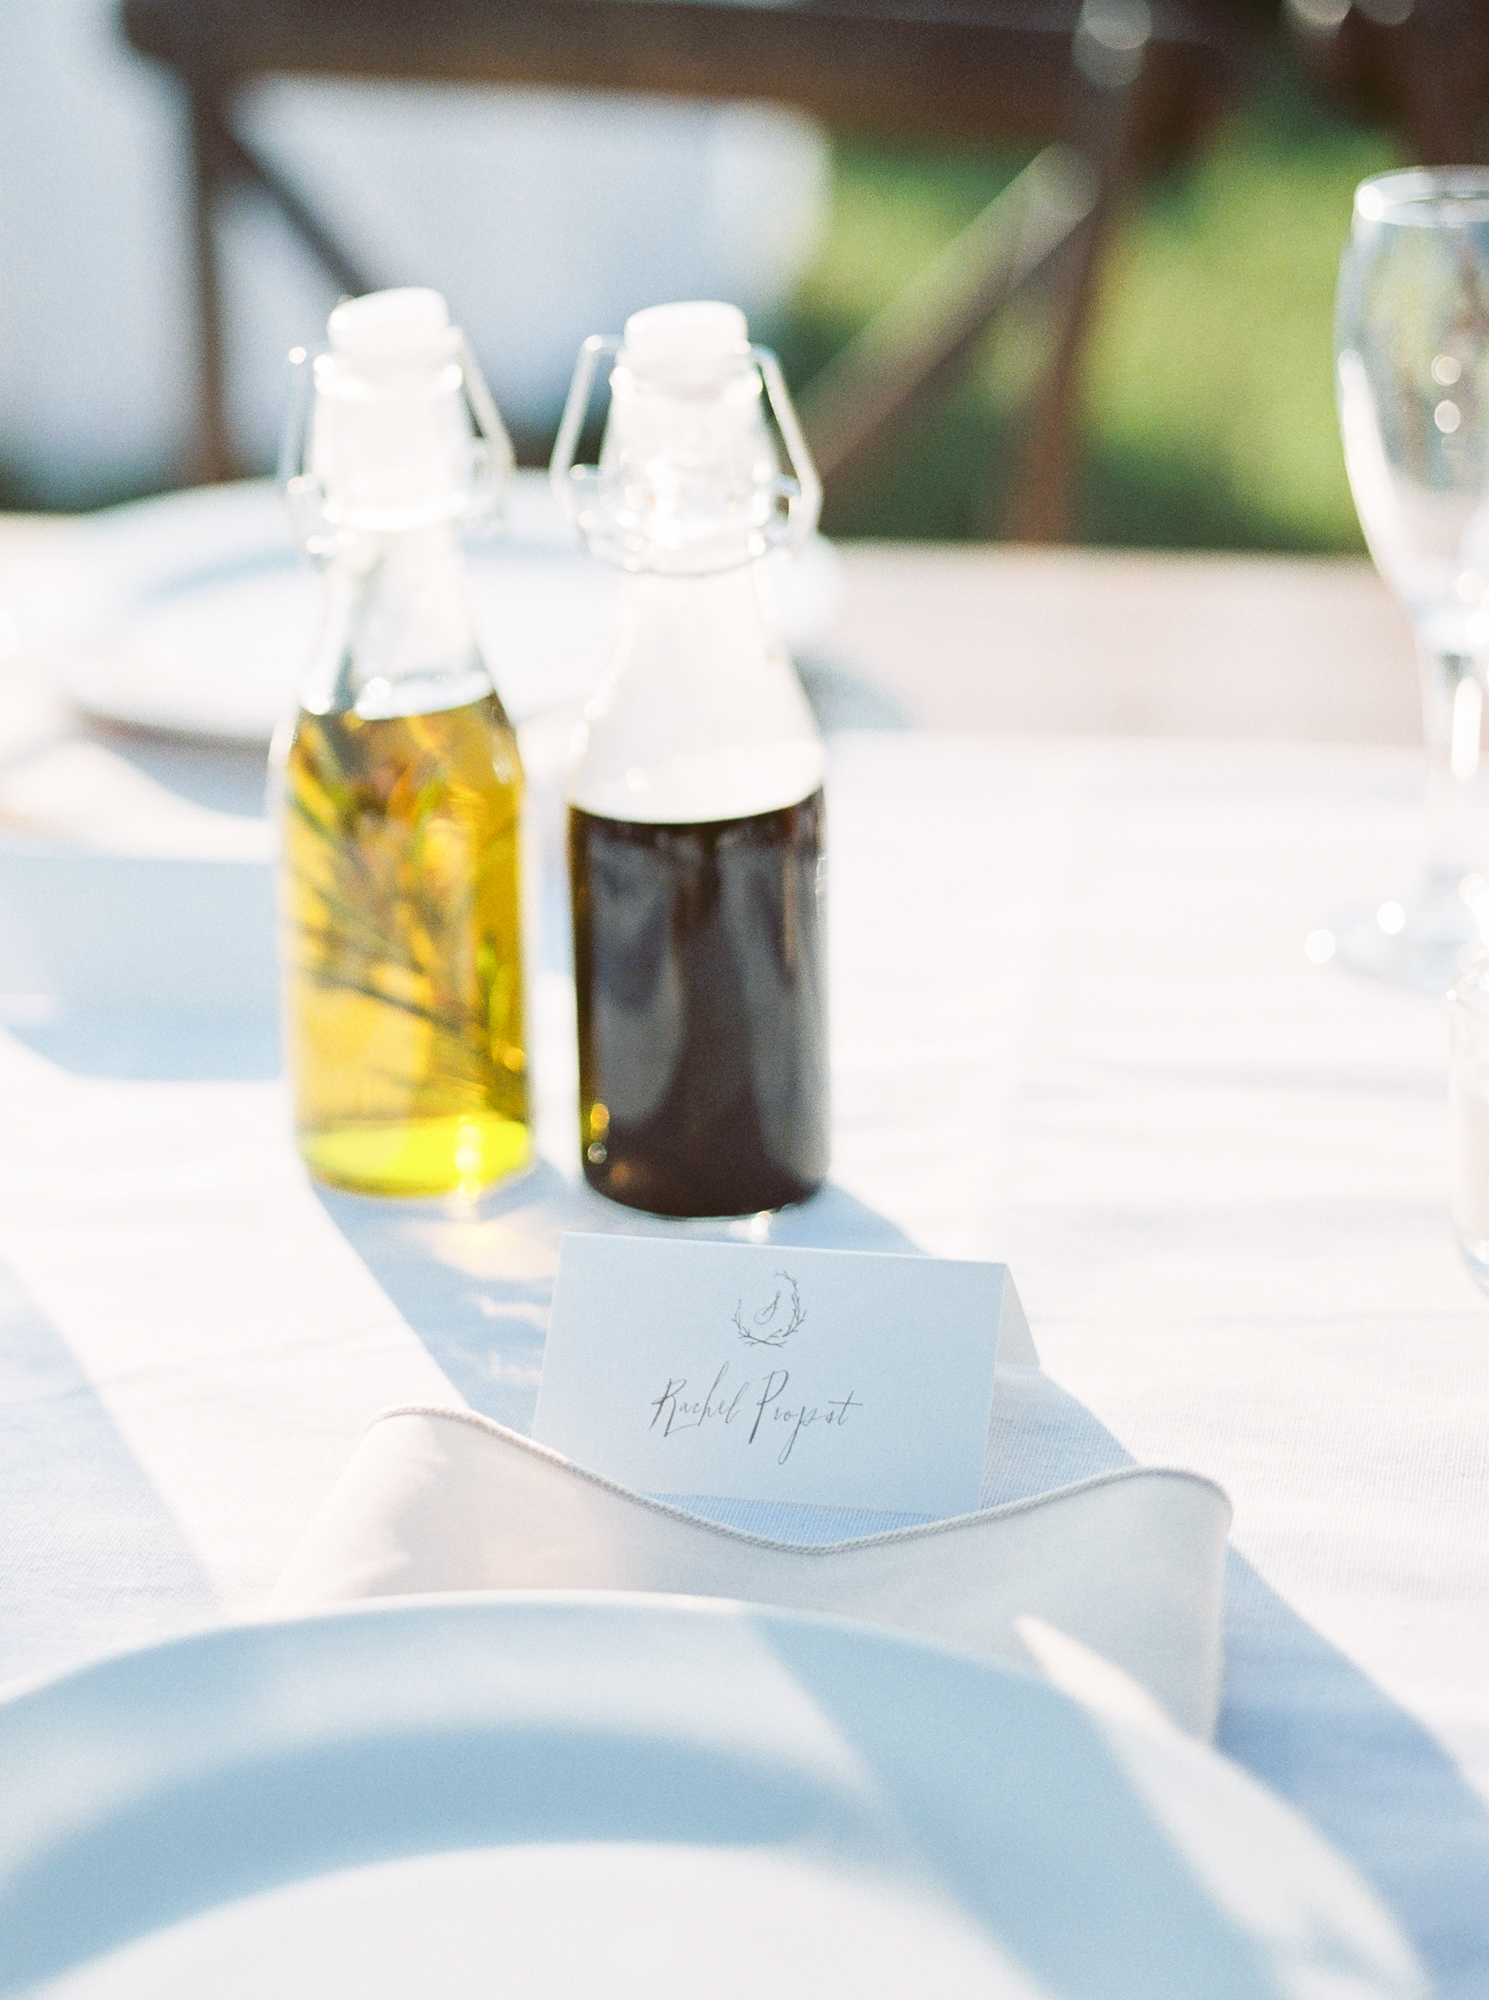 oil and vinegar on table